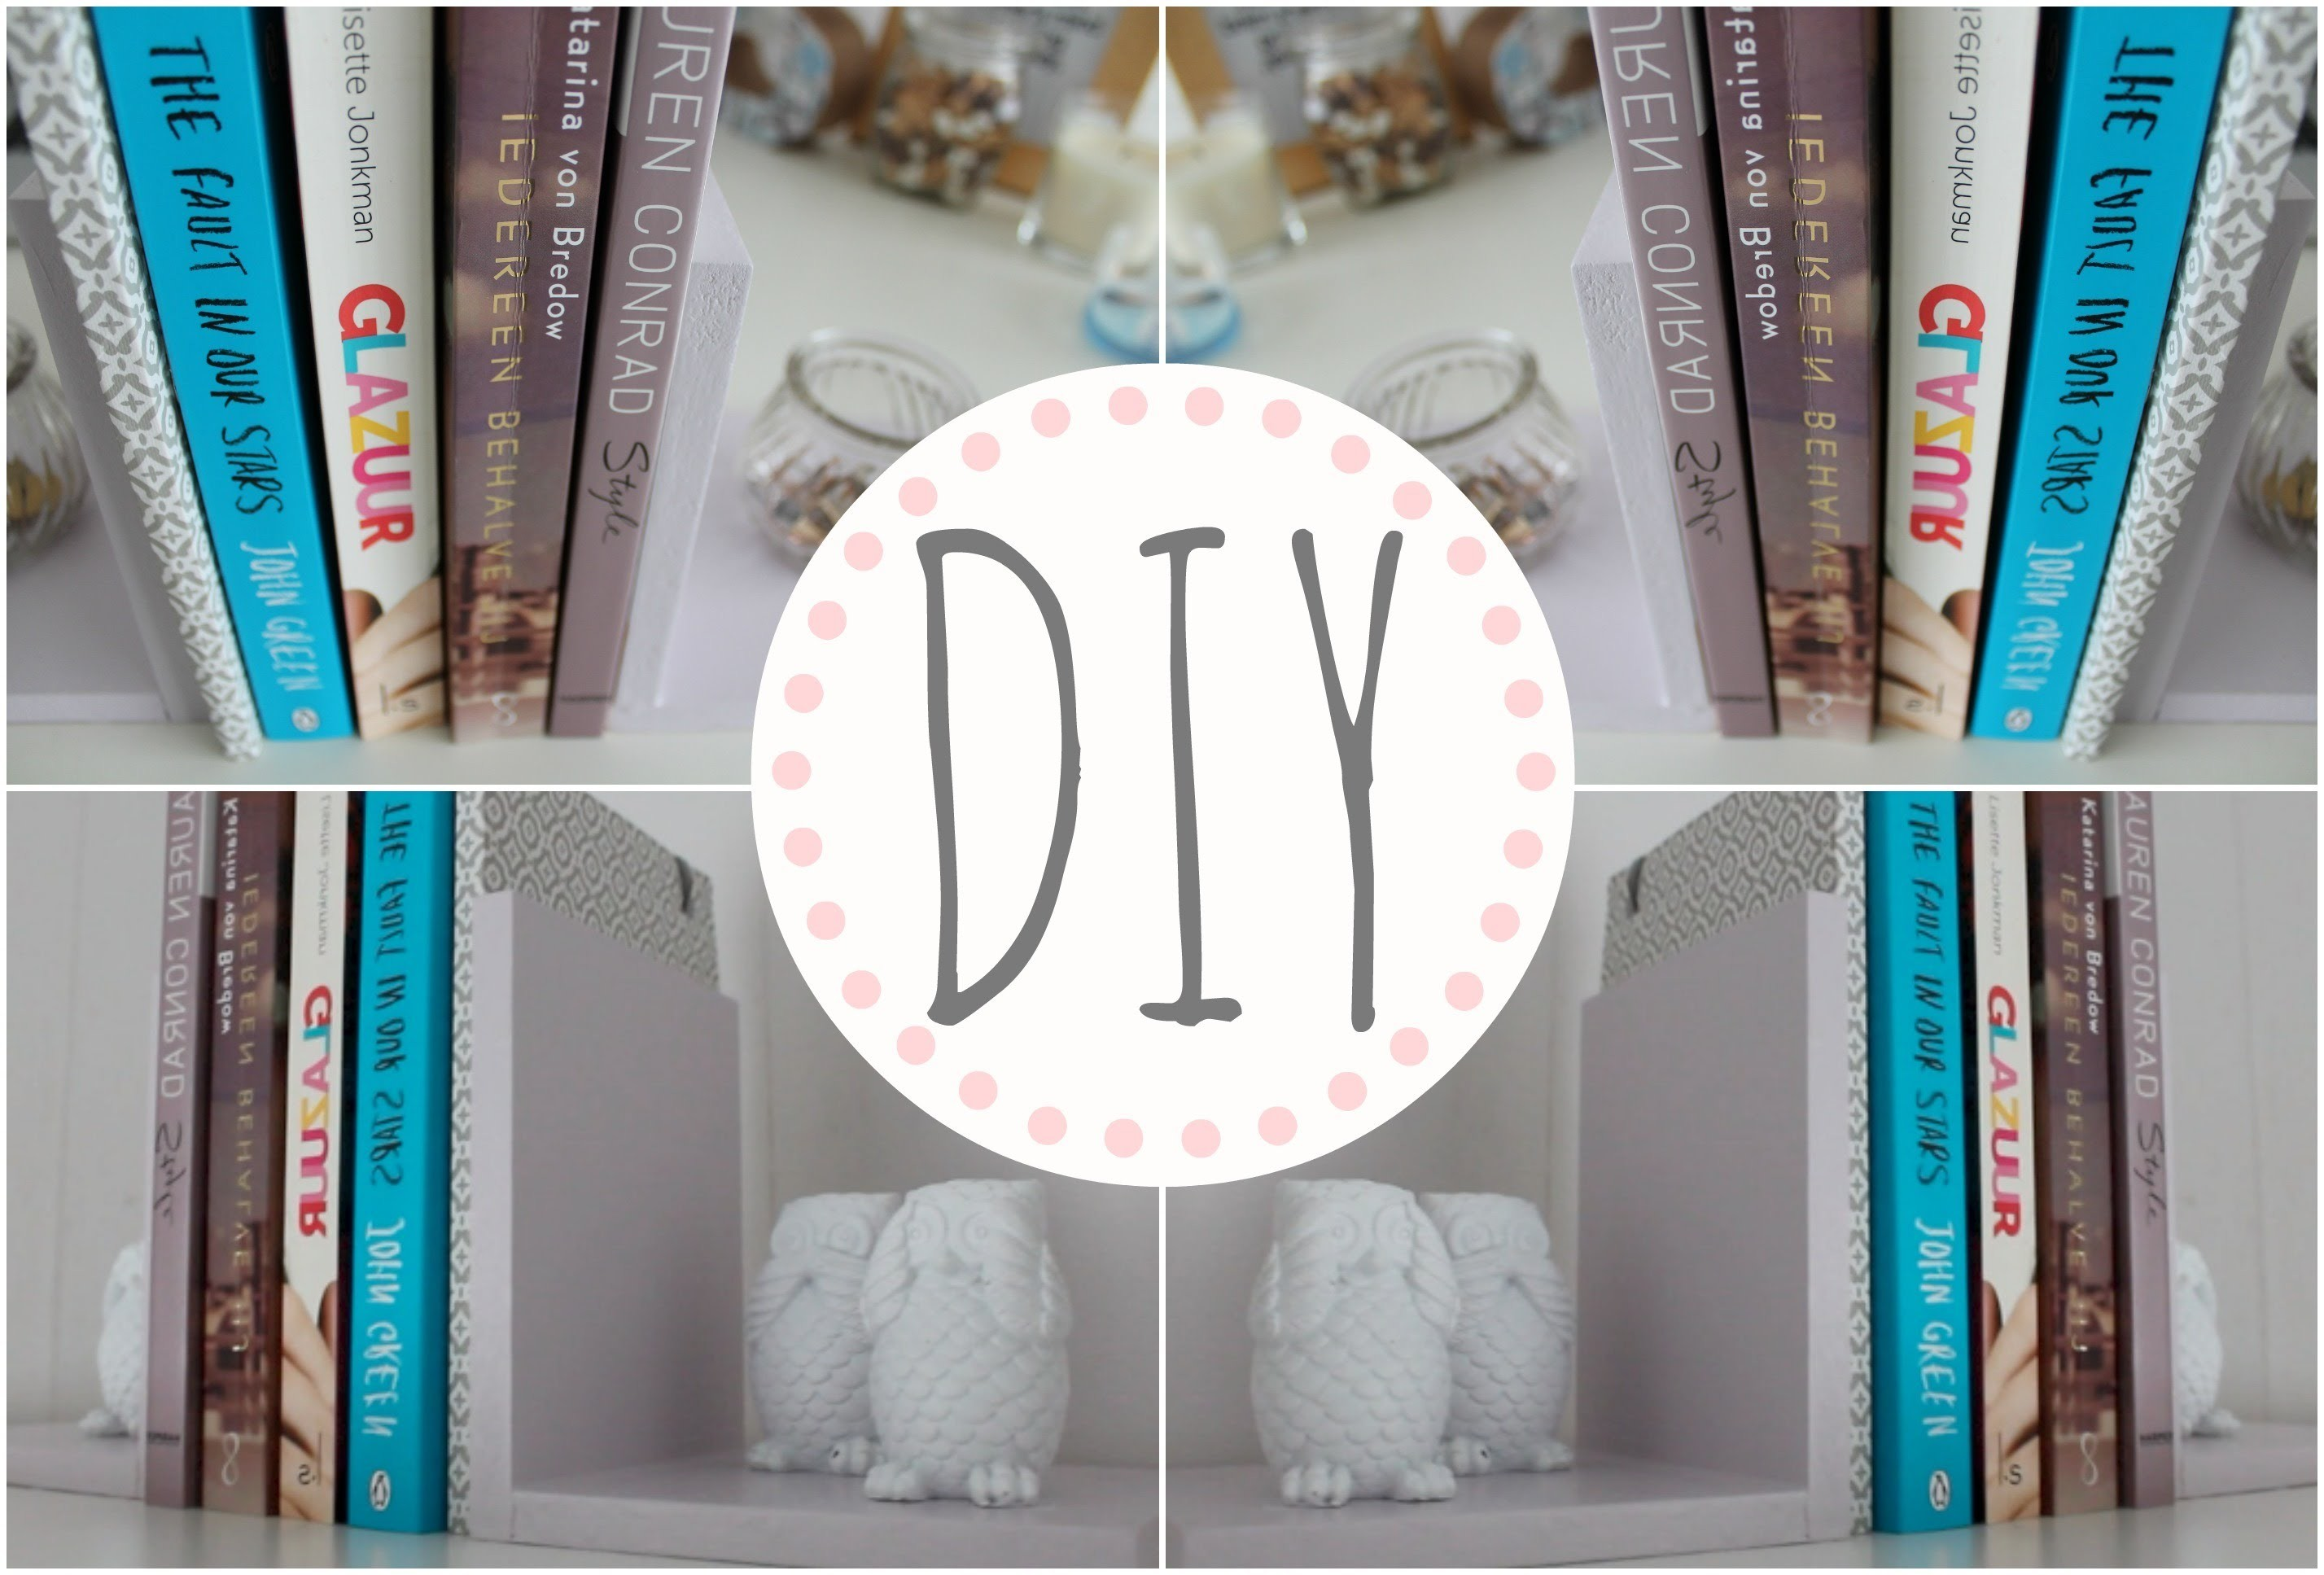 Slaapkamer decoratie diy ~ [spscents.com]